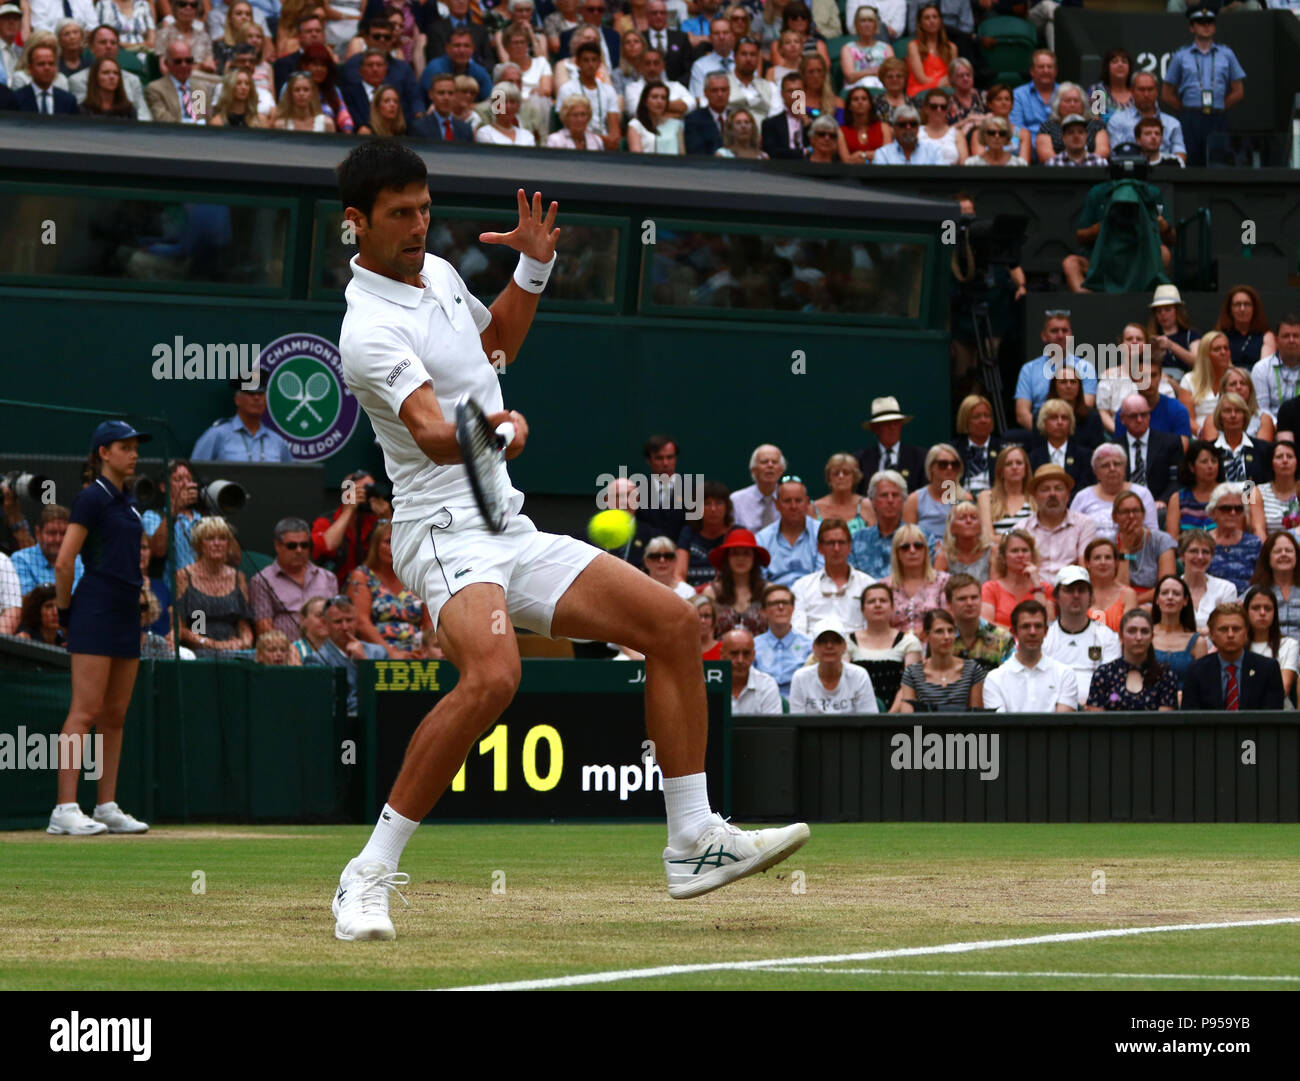 London, UK. 14th July 2018. Novak Djokovic in action in the conclusion of the Rafael Nadal and Novak Djokovic match.  Ladies Finals Day, Day 12 Wimbledon Tennis The Championships, Wimbledon, London, on July 14, 2018. Credit: Paul Marriott/Alamy Live News - Stock Image